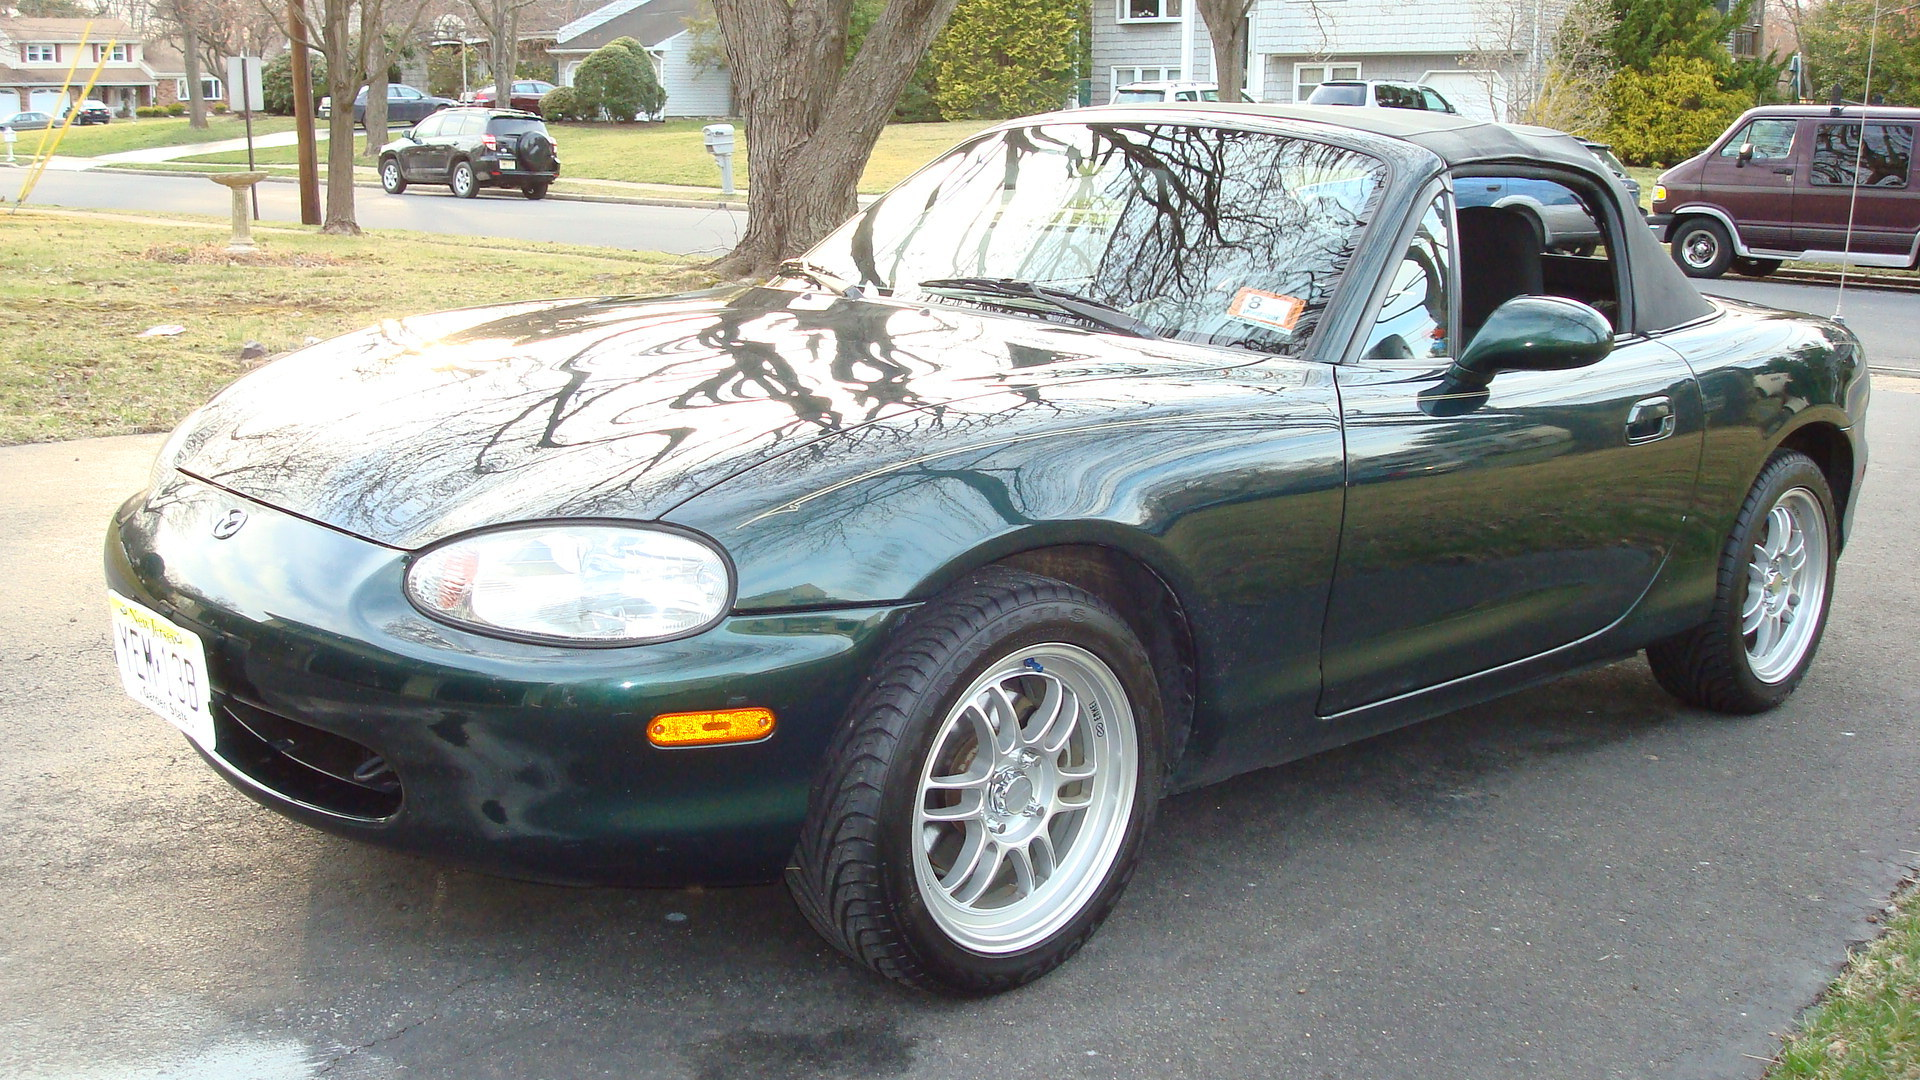 davemac44 39 s 1999 mazda miata mx 5 in east windsor nj. Black Bedroom Furniture Sets. Home Design Ideas